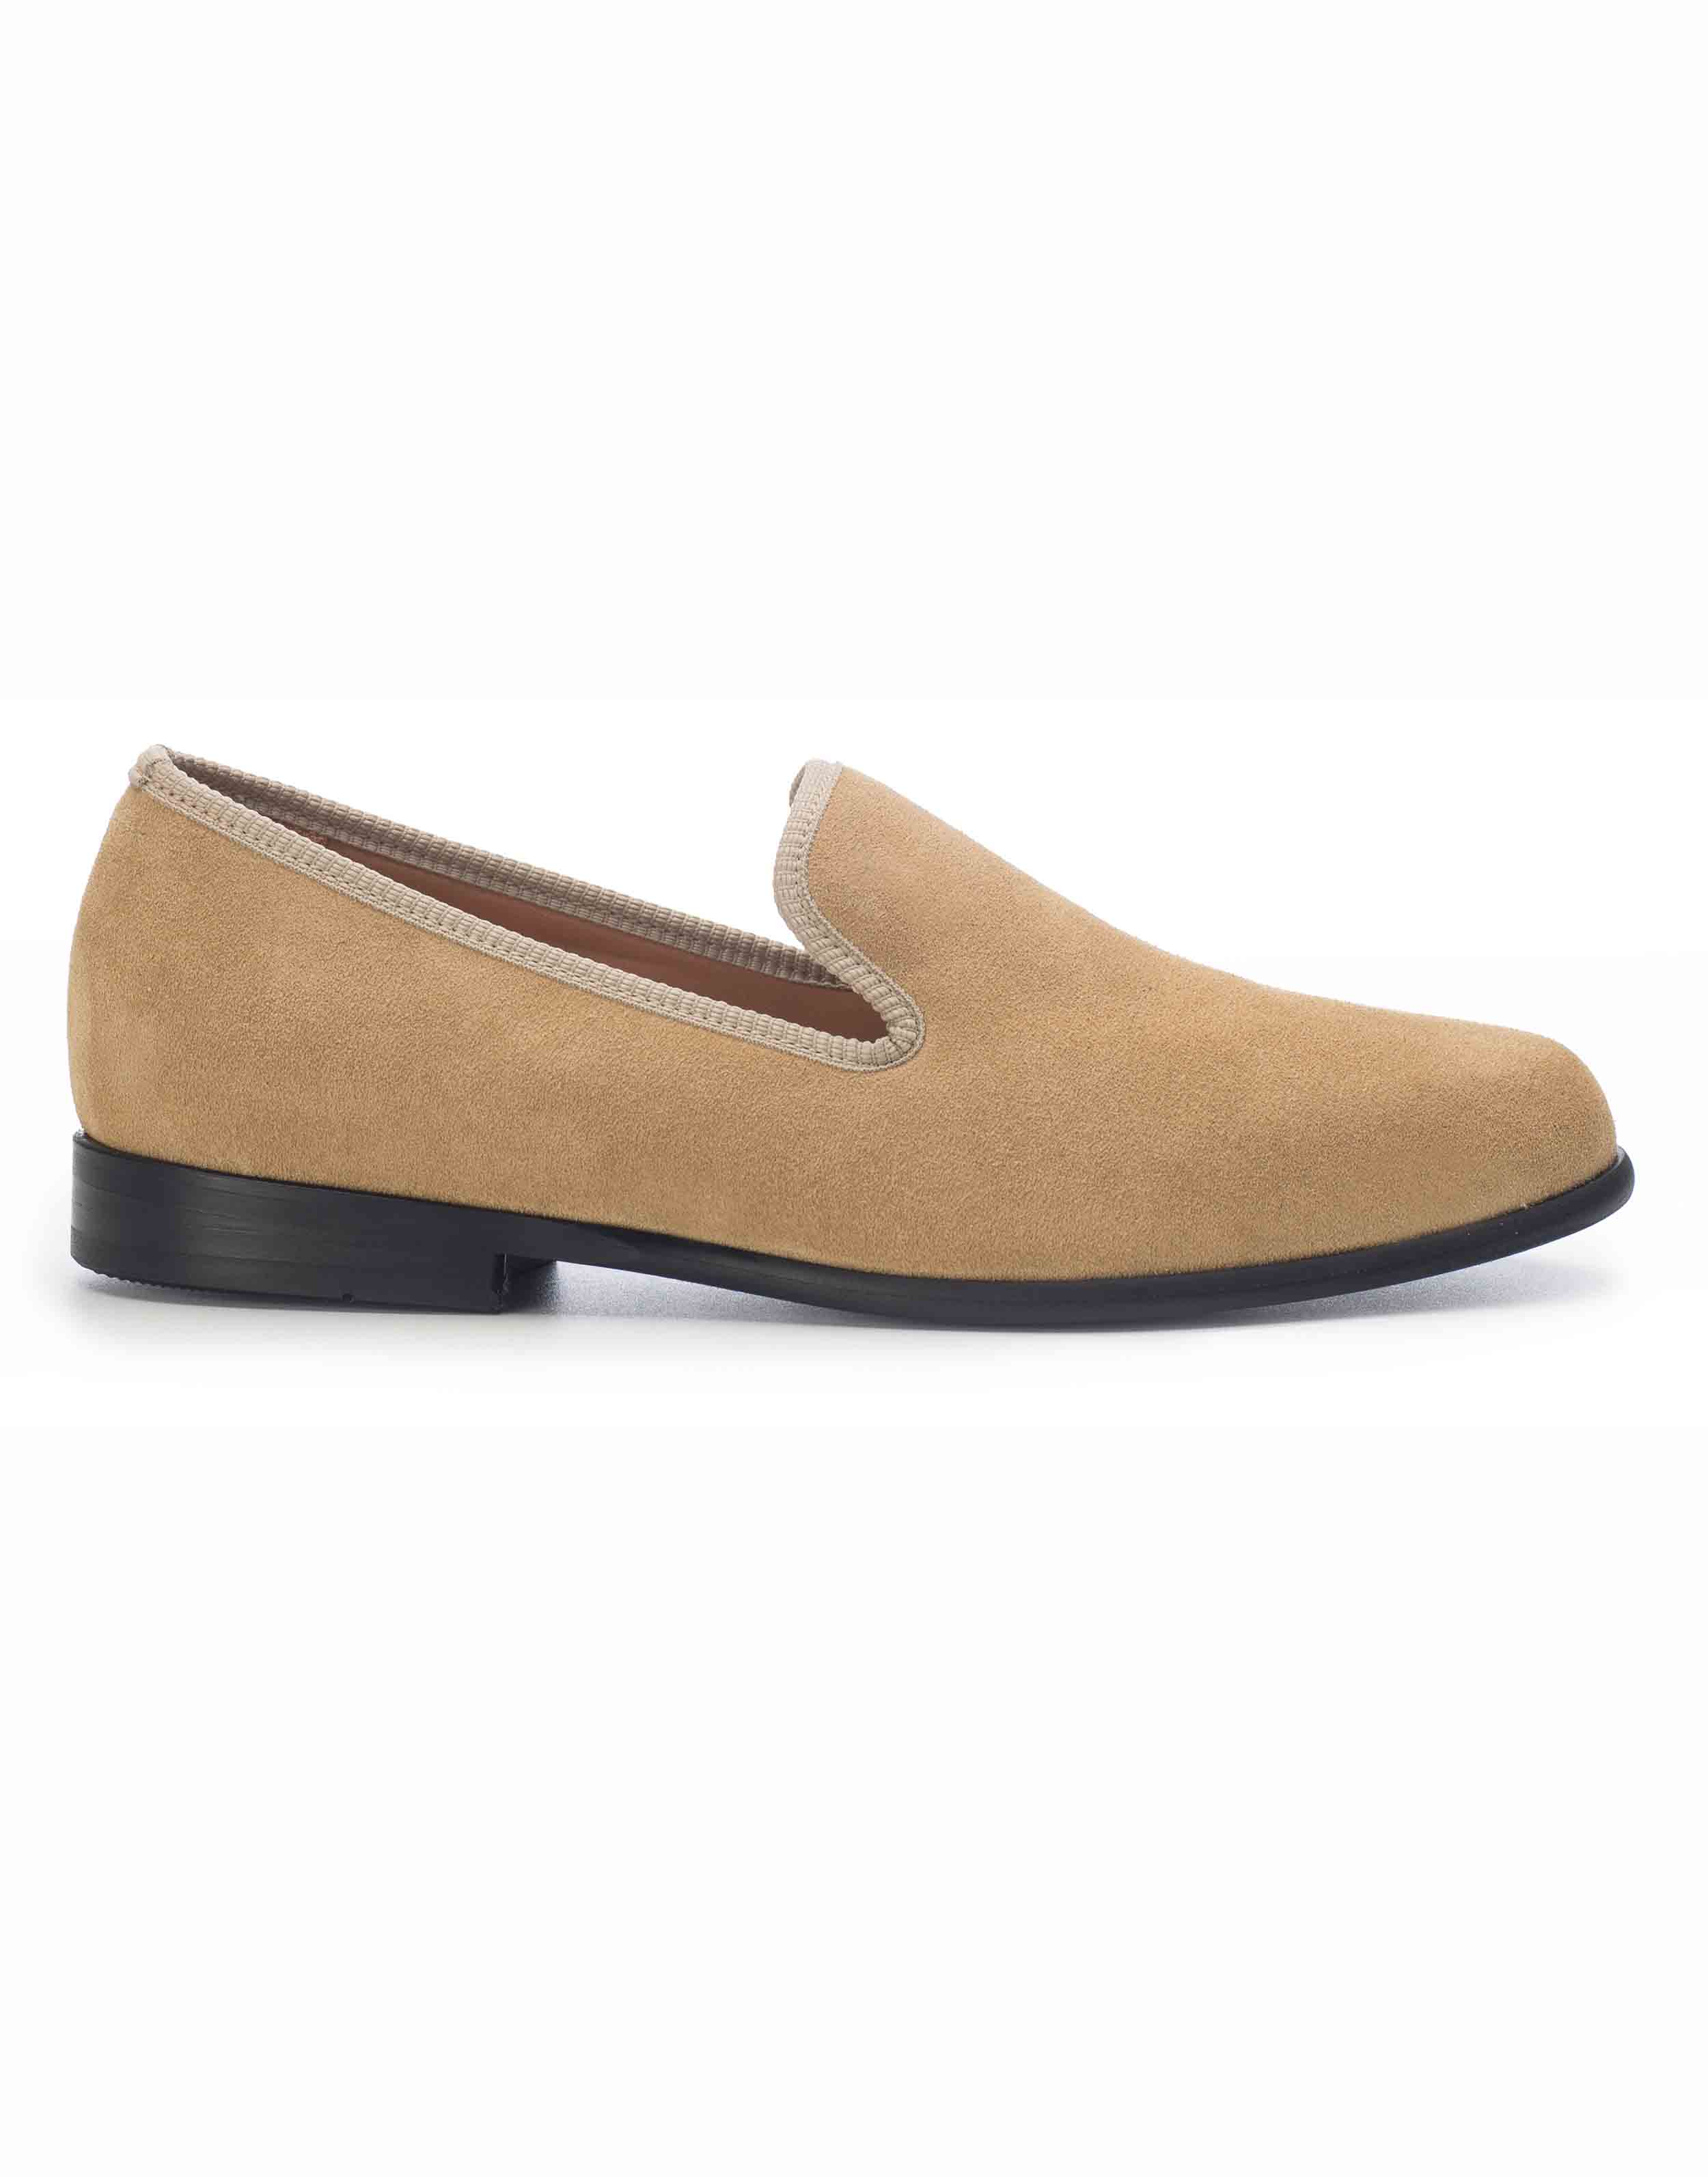 LIGHT TAN SUEDE LOAFERS1